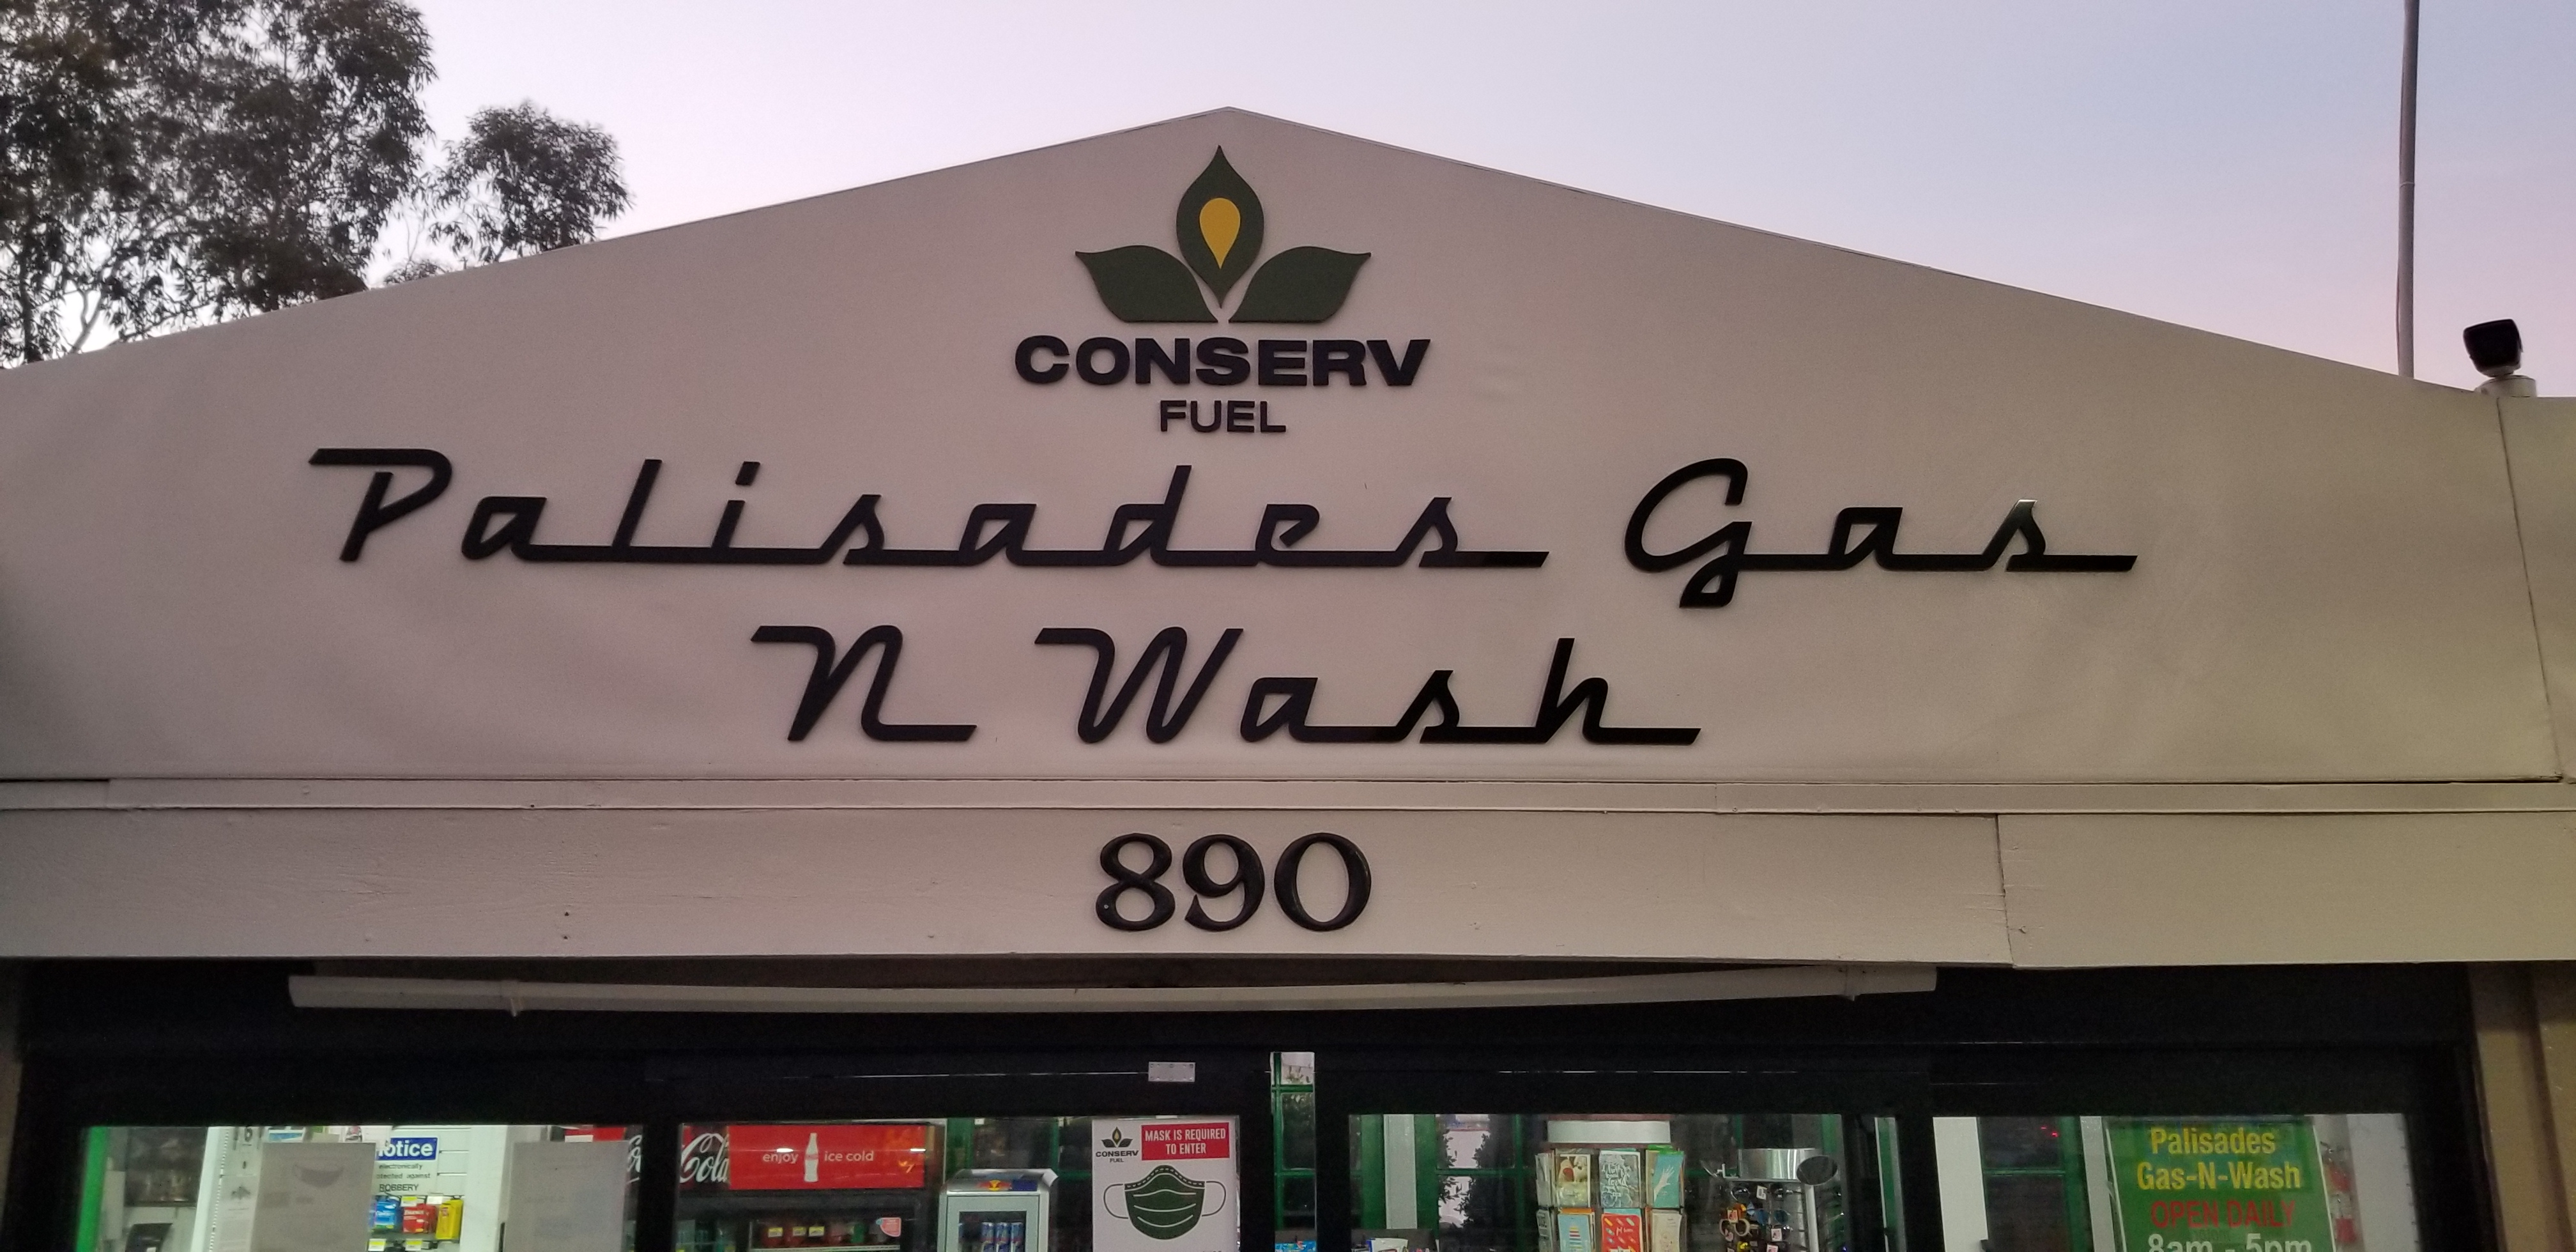 These are the custom dimensional letters sign made for Palisades Gas N Wash located at Conserv Fuel in the Pacific Palisades.